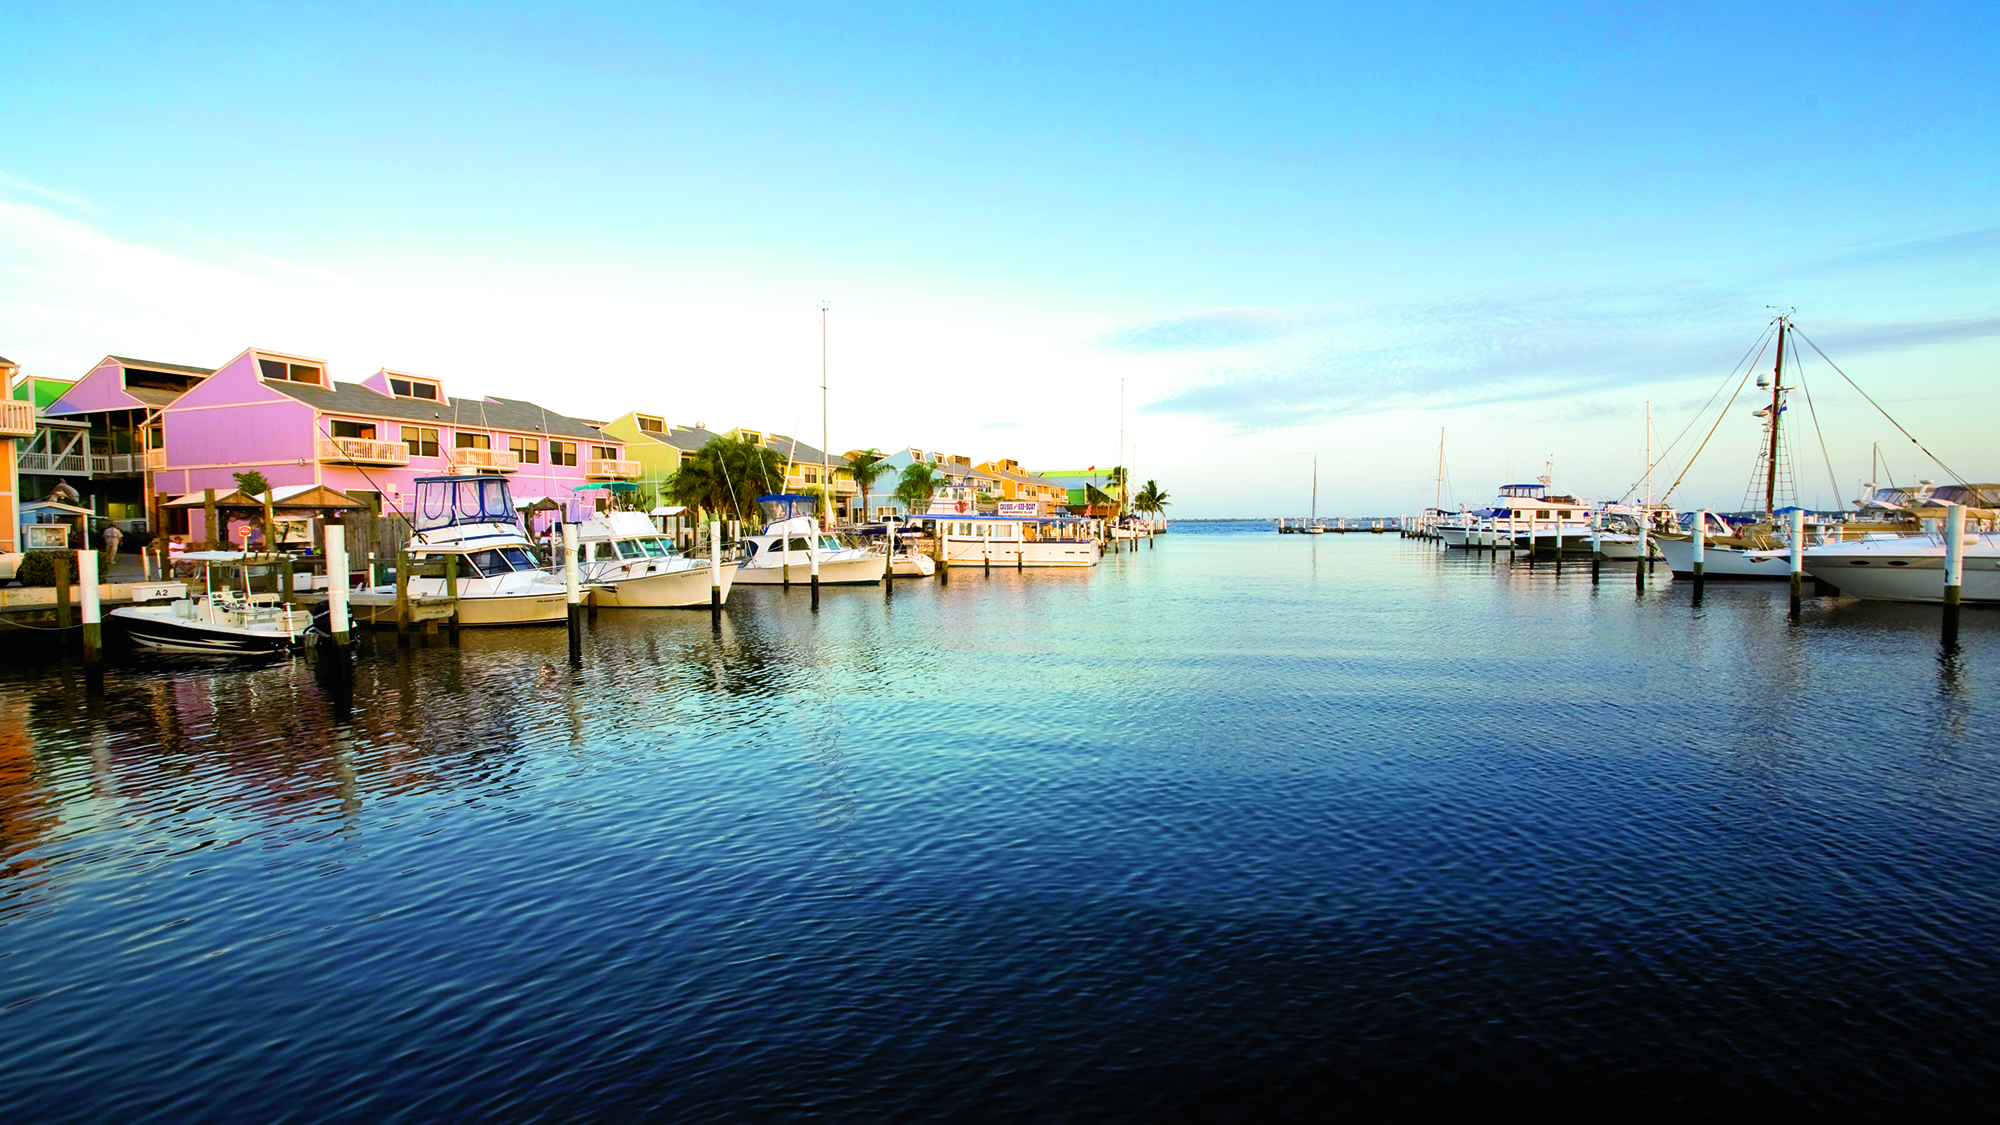 Charlotte Harbor S Laid Back Charms Travel Weekly